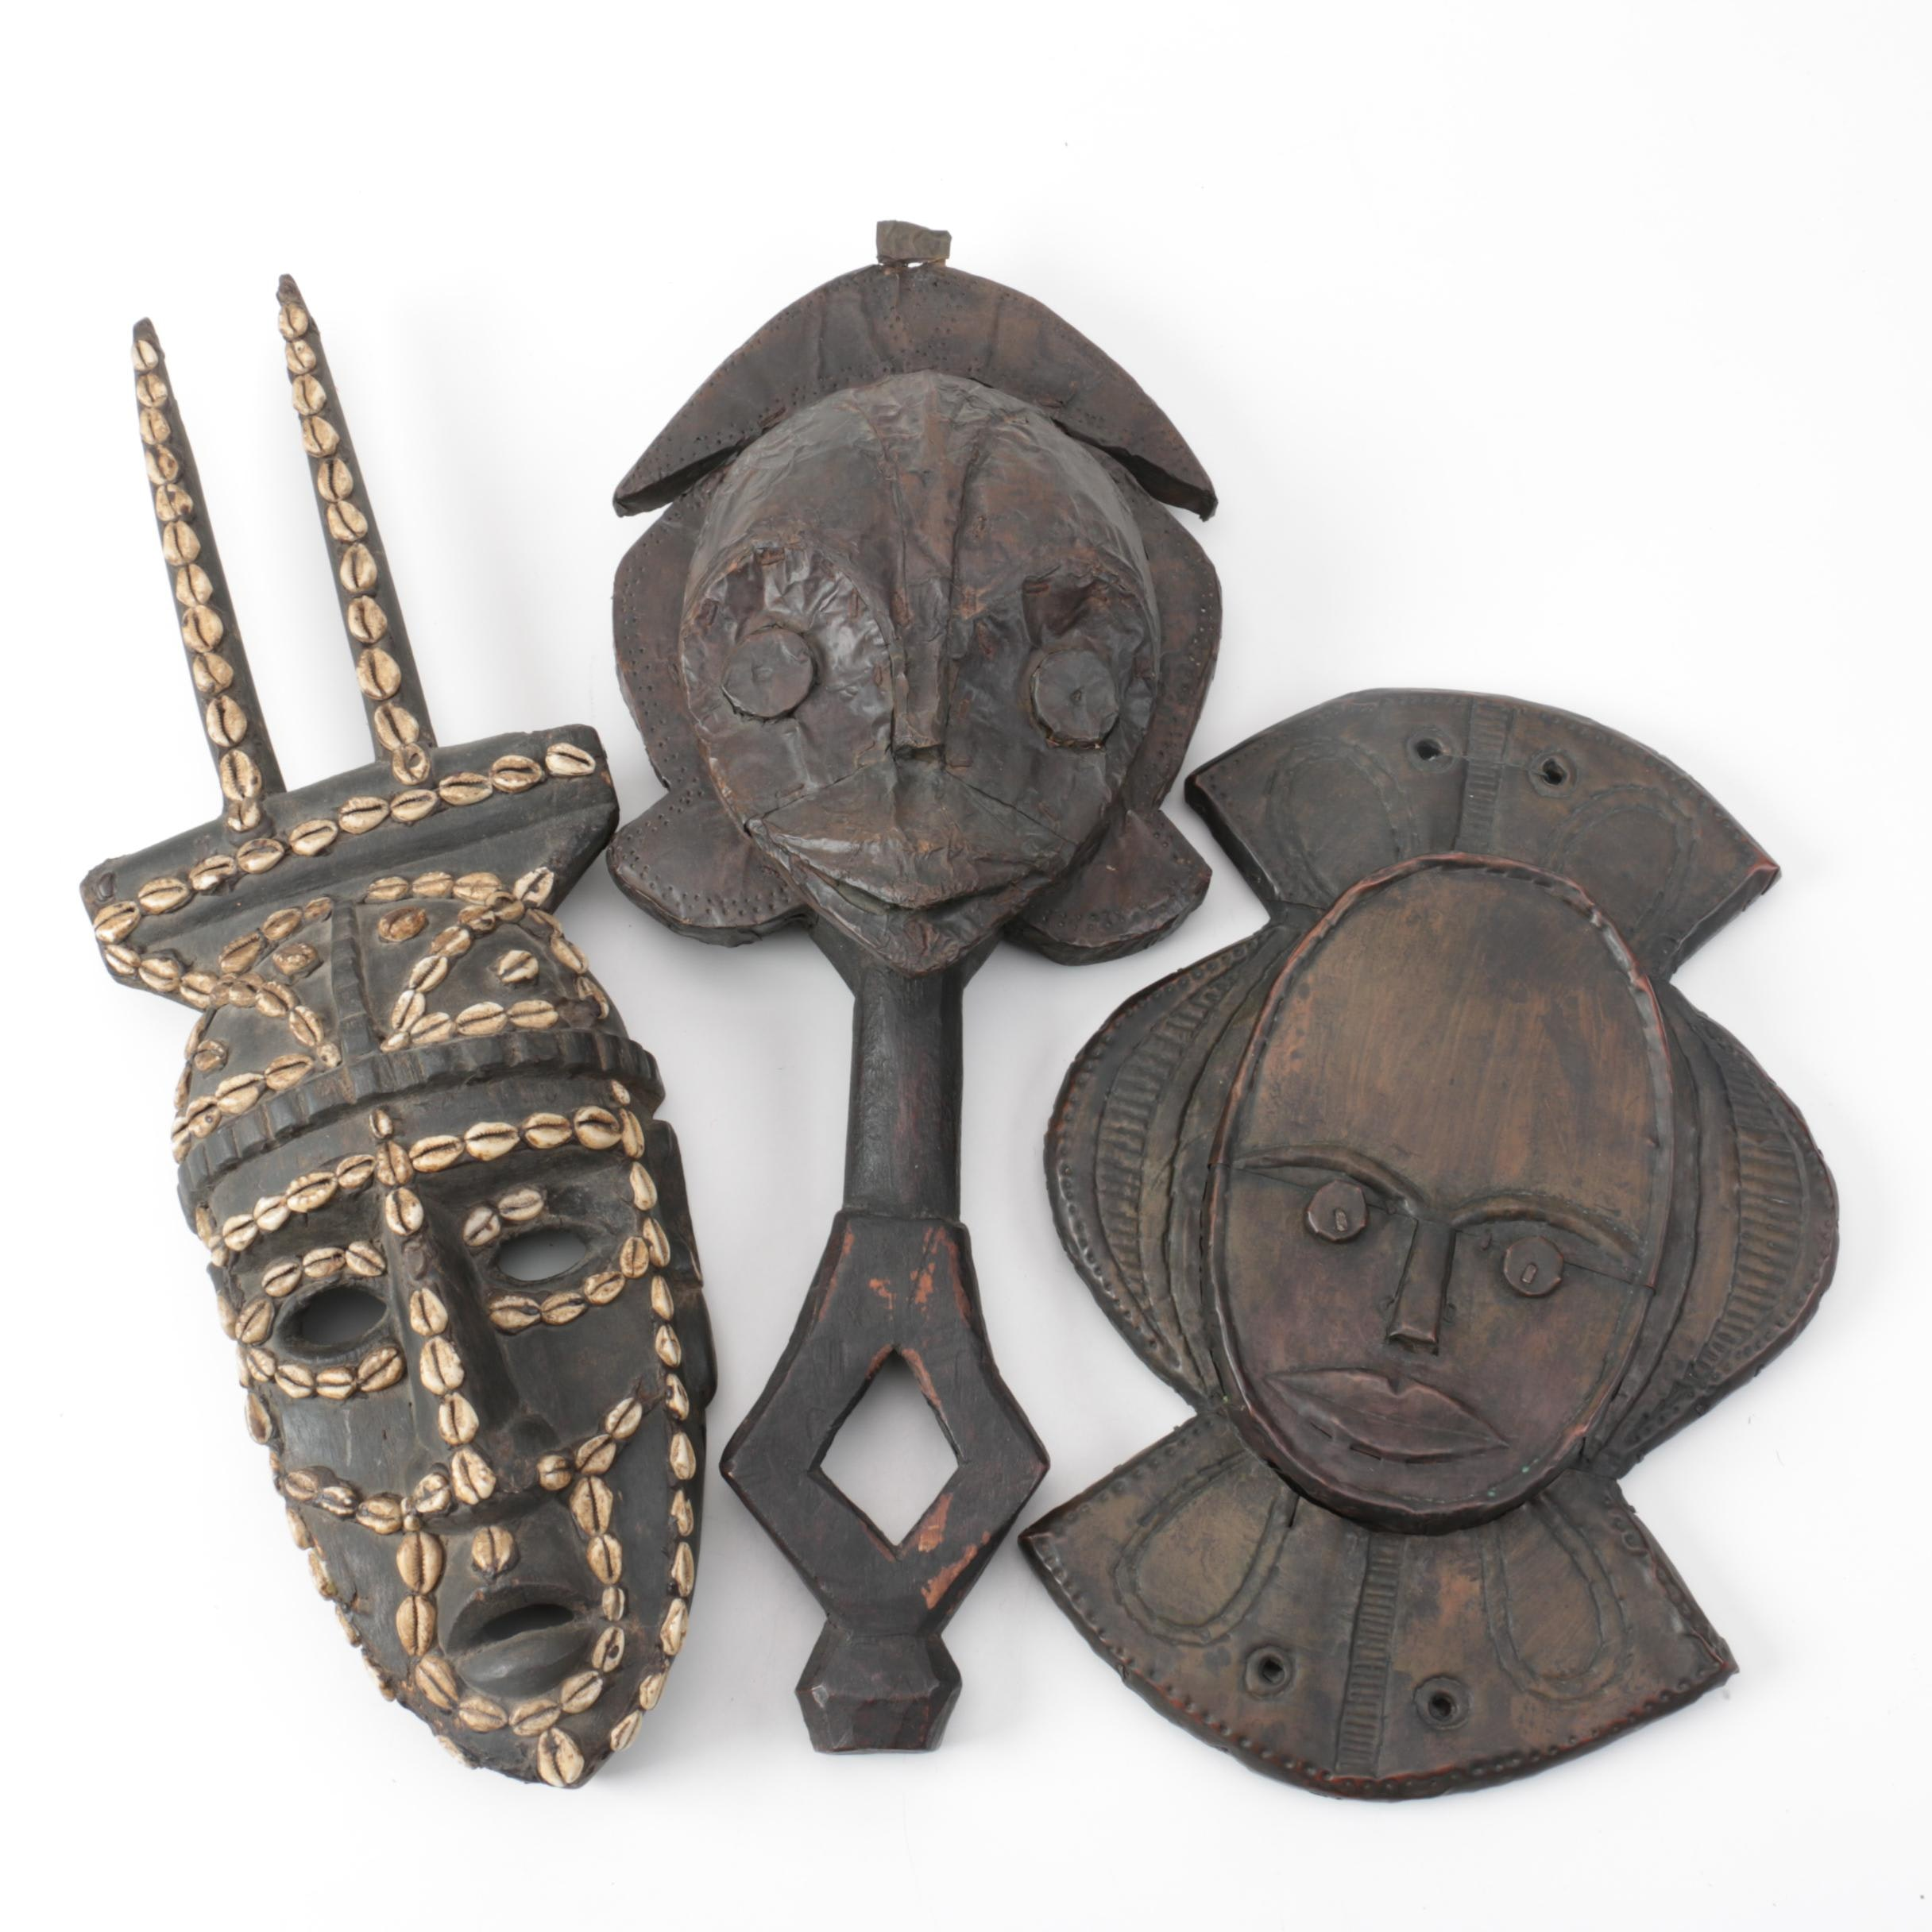 Bamana Style Carved Wood Mask and Gabon Style Reliquary Masks